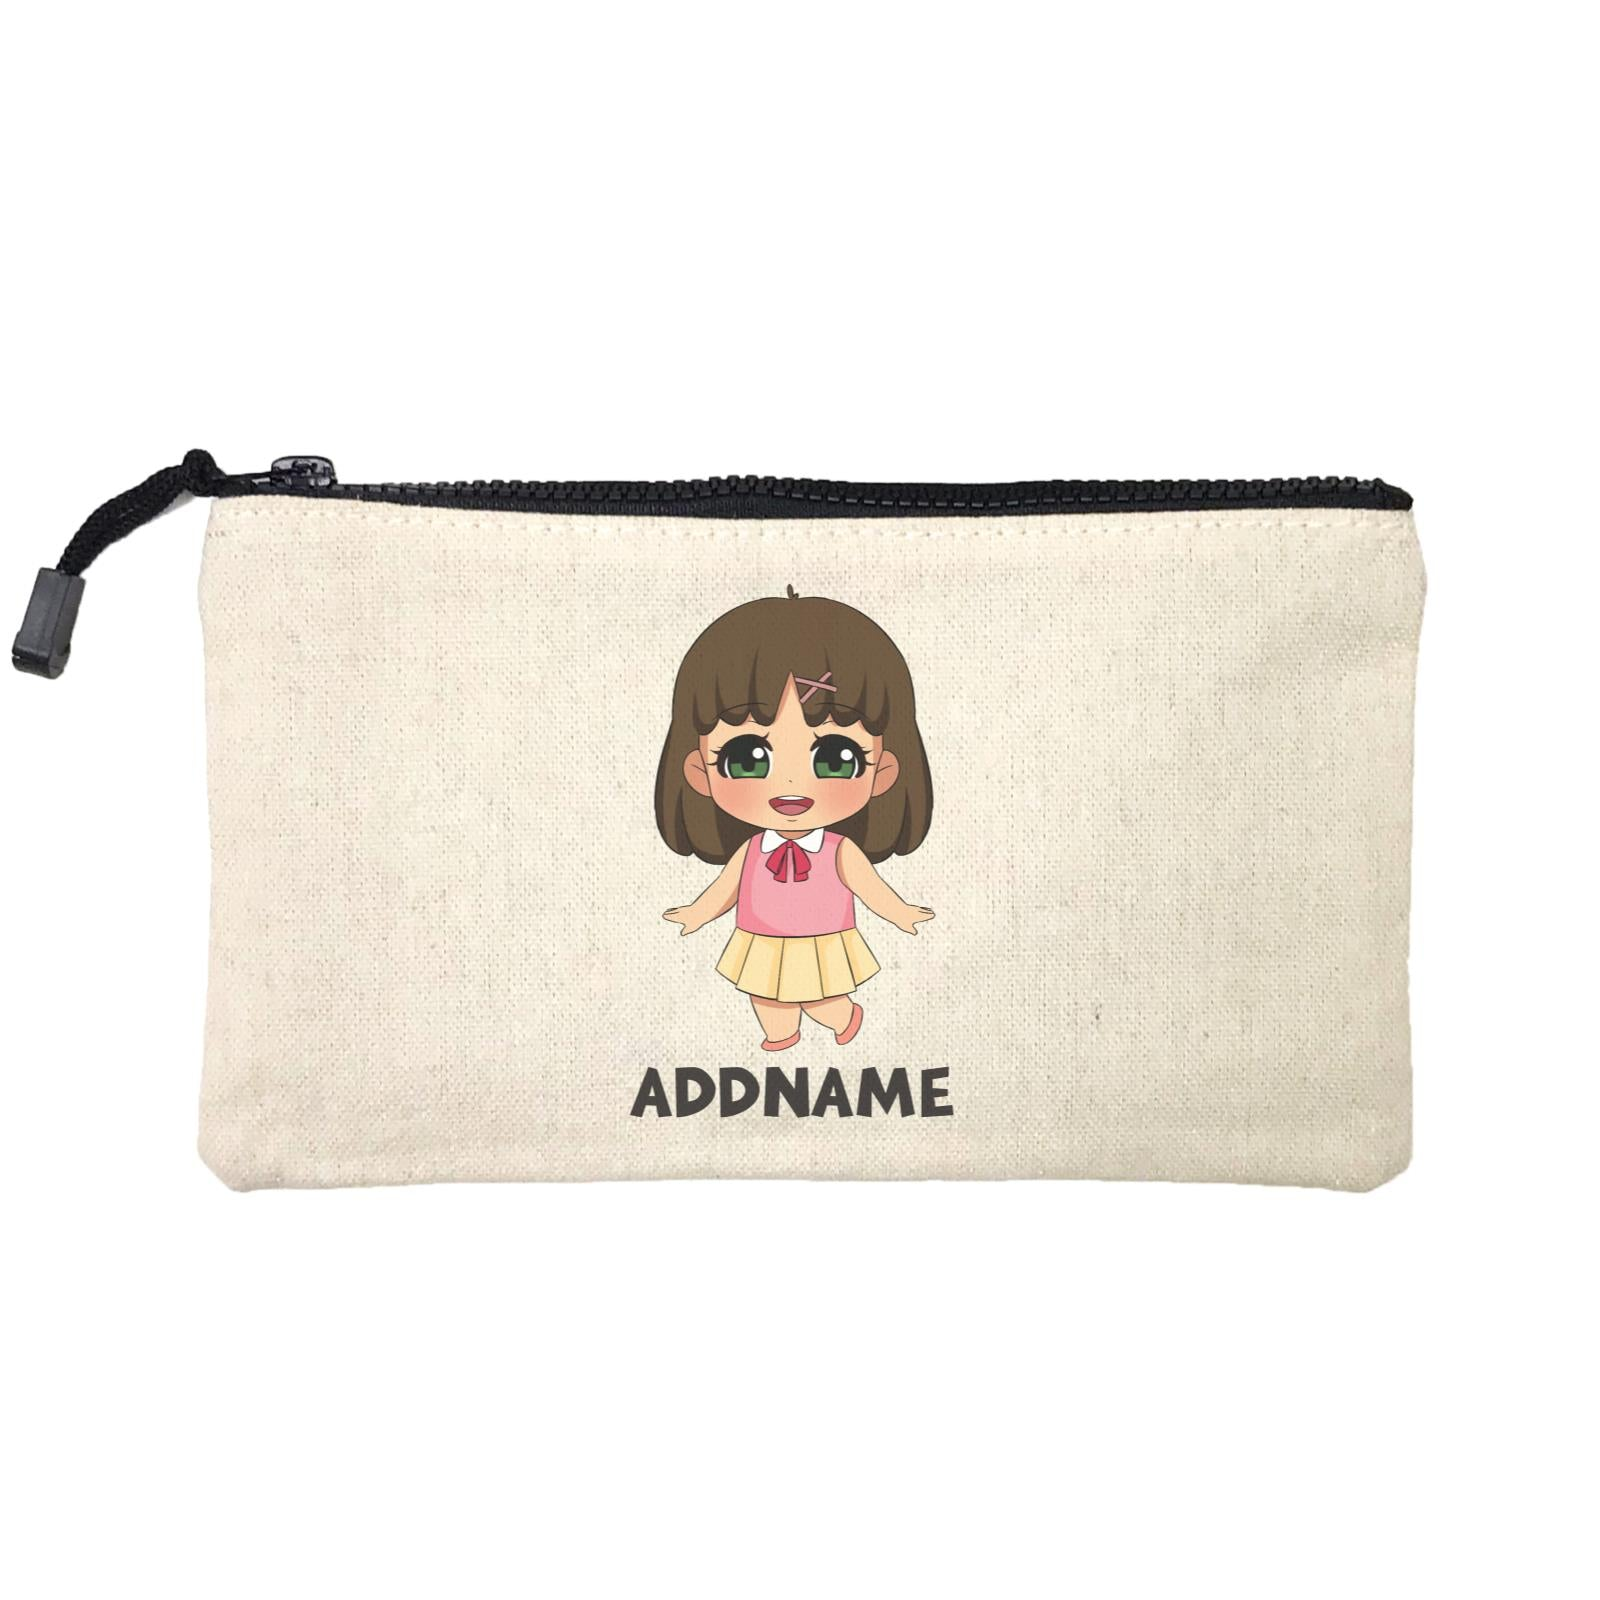 Children's Day Gift Series Little Chinese Girl Addname SP Stationery Pouch